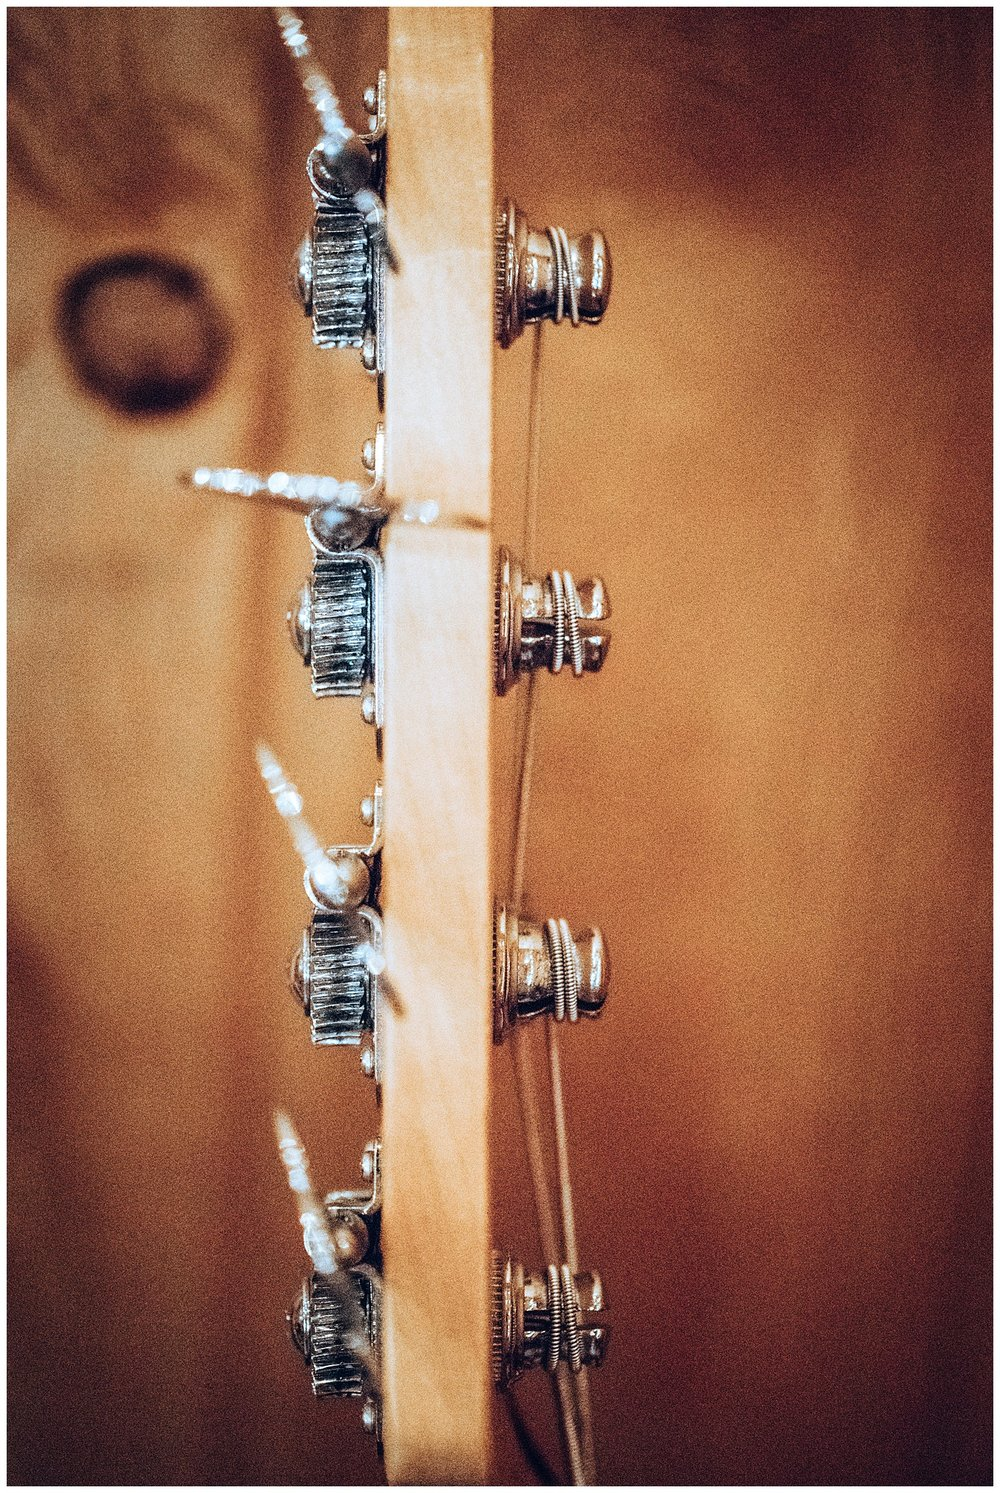 Chamonix Films - Seattle Music Videographer - Music Photography - abstract instrument photos guitar tuning pegs